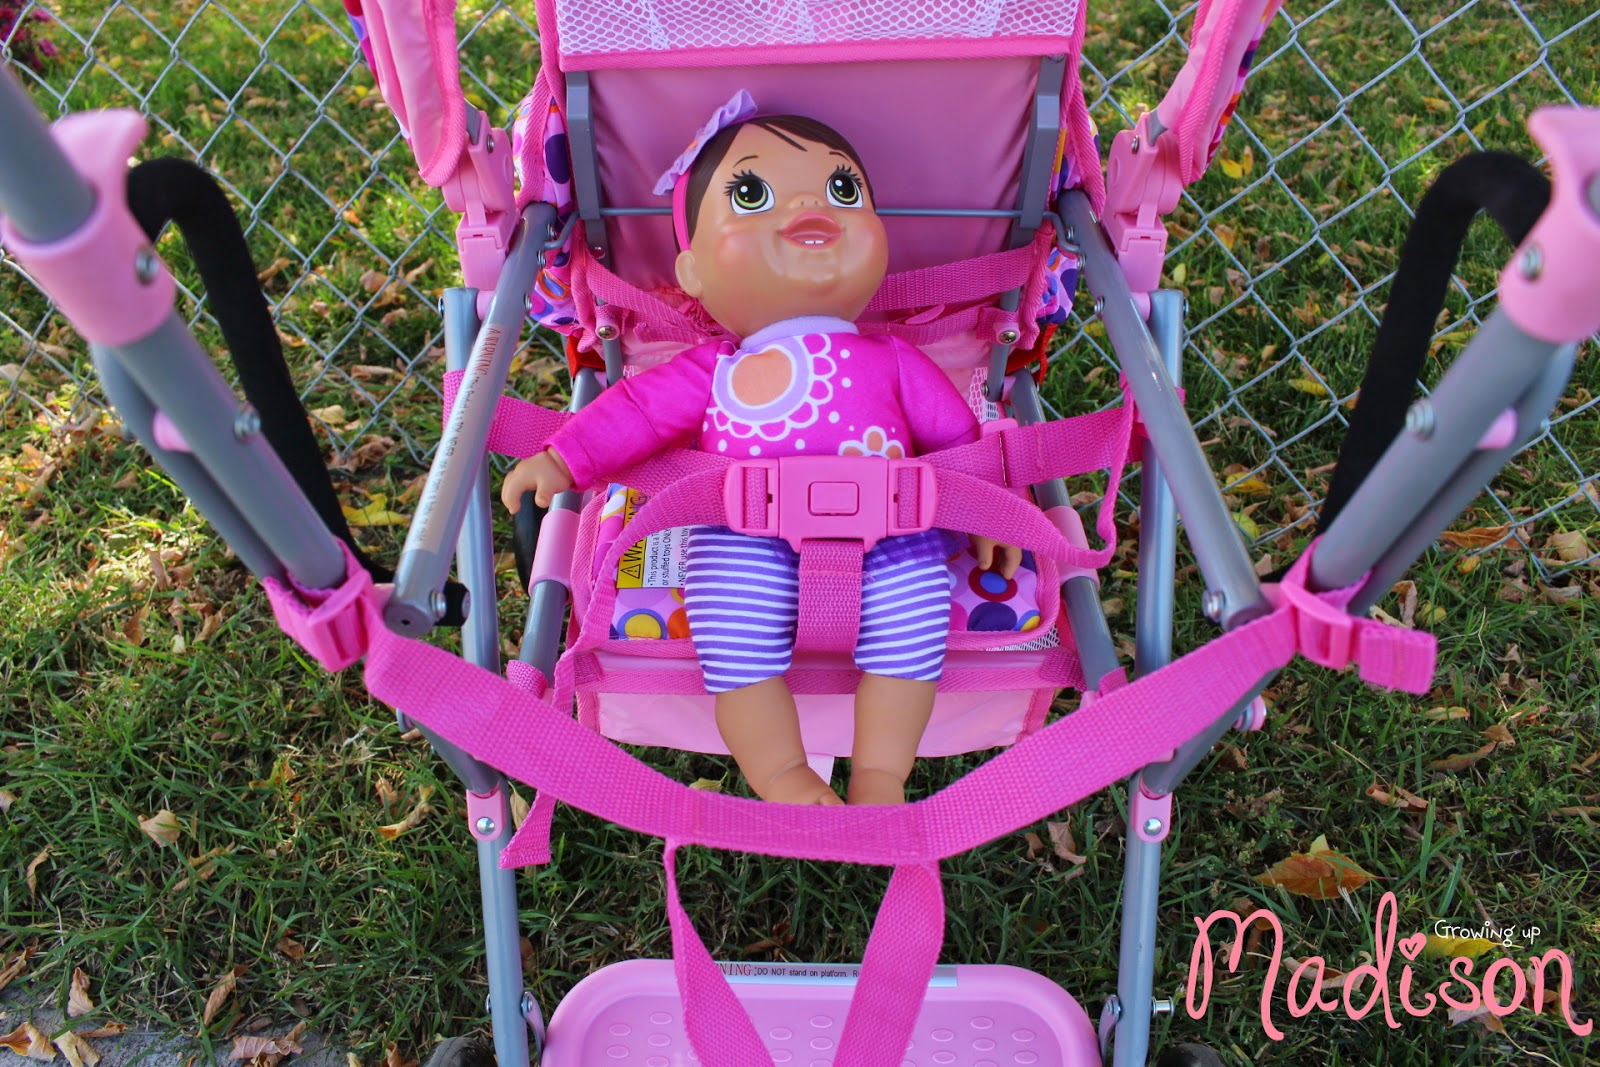 Joovy Toy Doll Caboose Tandem Stroller The Only Your Jpg 1600x1067